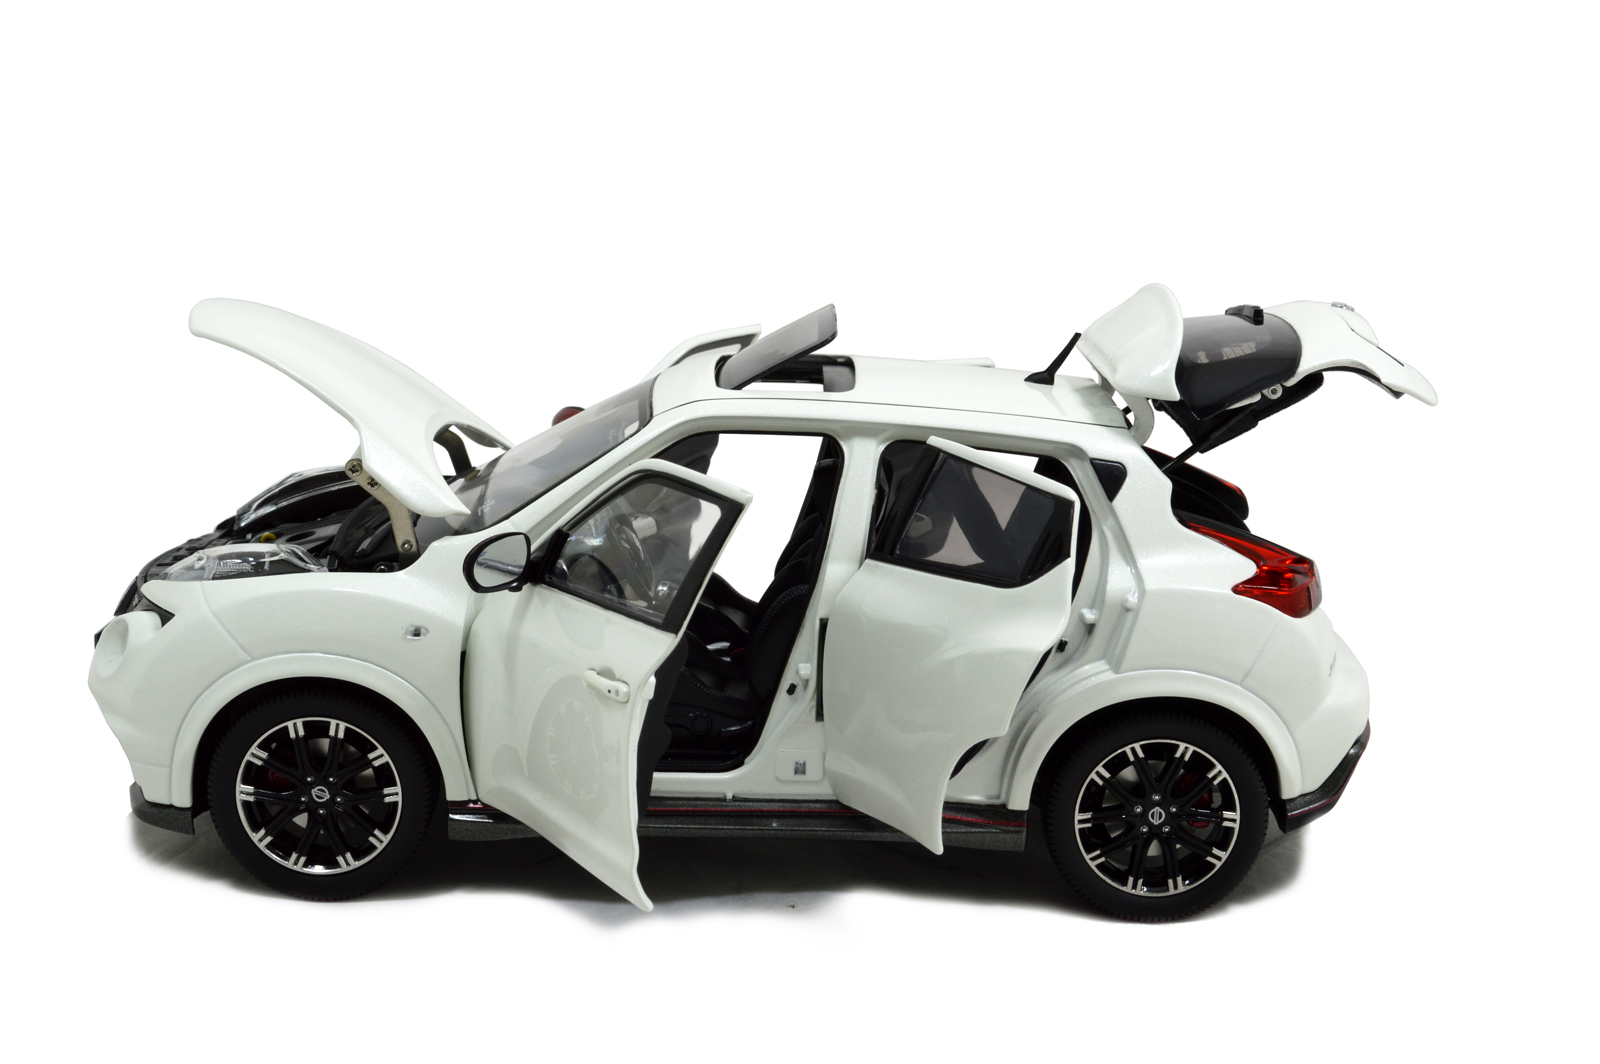 Wholesale Car Parts >> Nissan Juke Nismo RS 2014 1/18 Scale Diecast Model Car Wholesale - Paudi Model